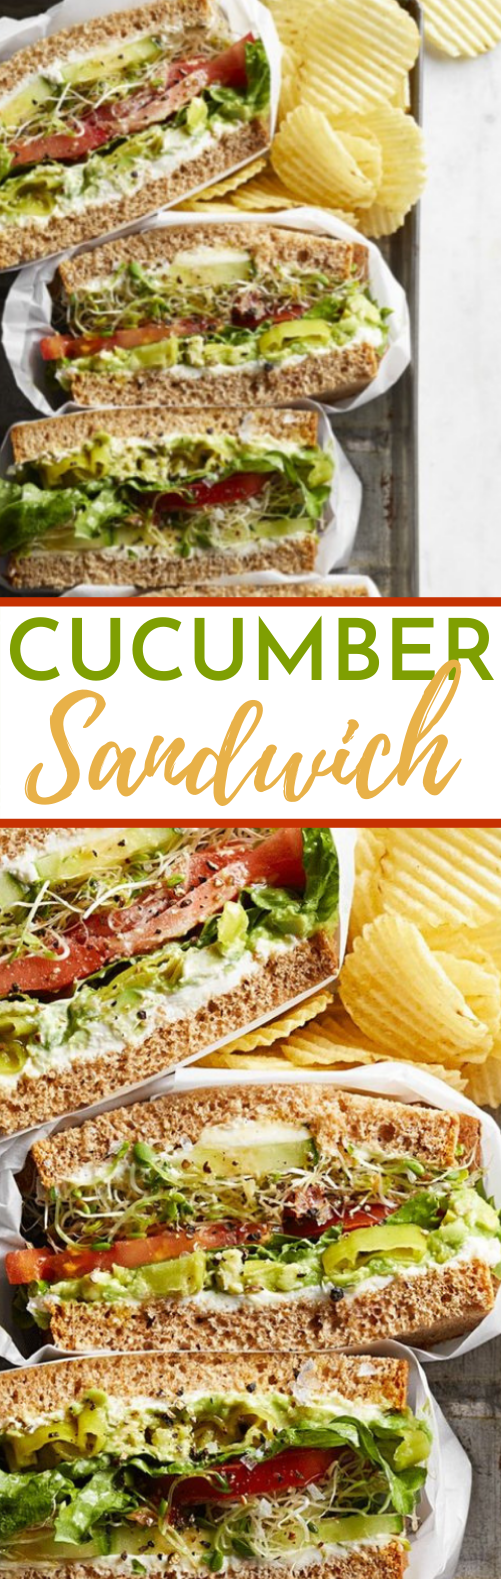 Cucumber Sandwich #vegan #lunch #breakfast #healthy #sandwich